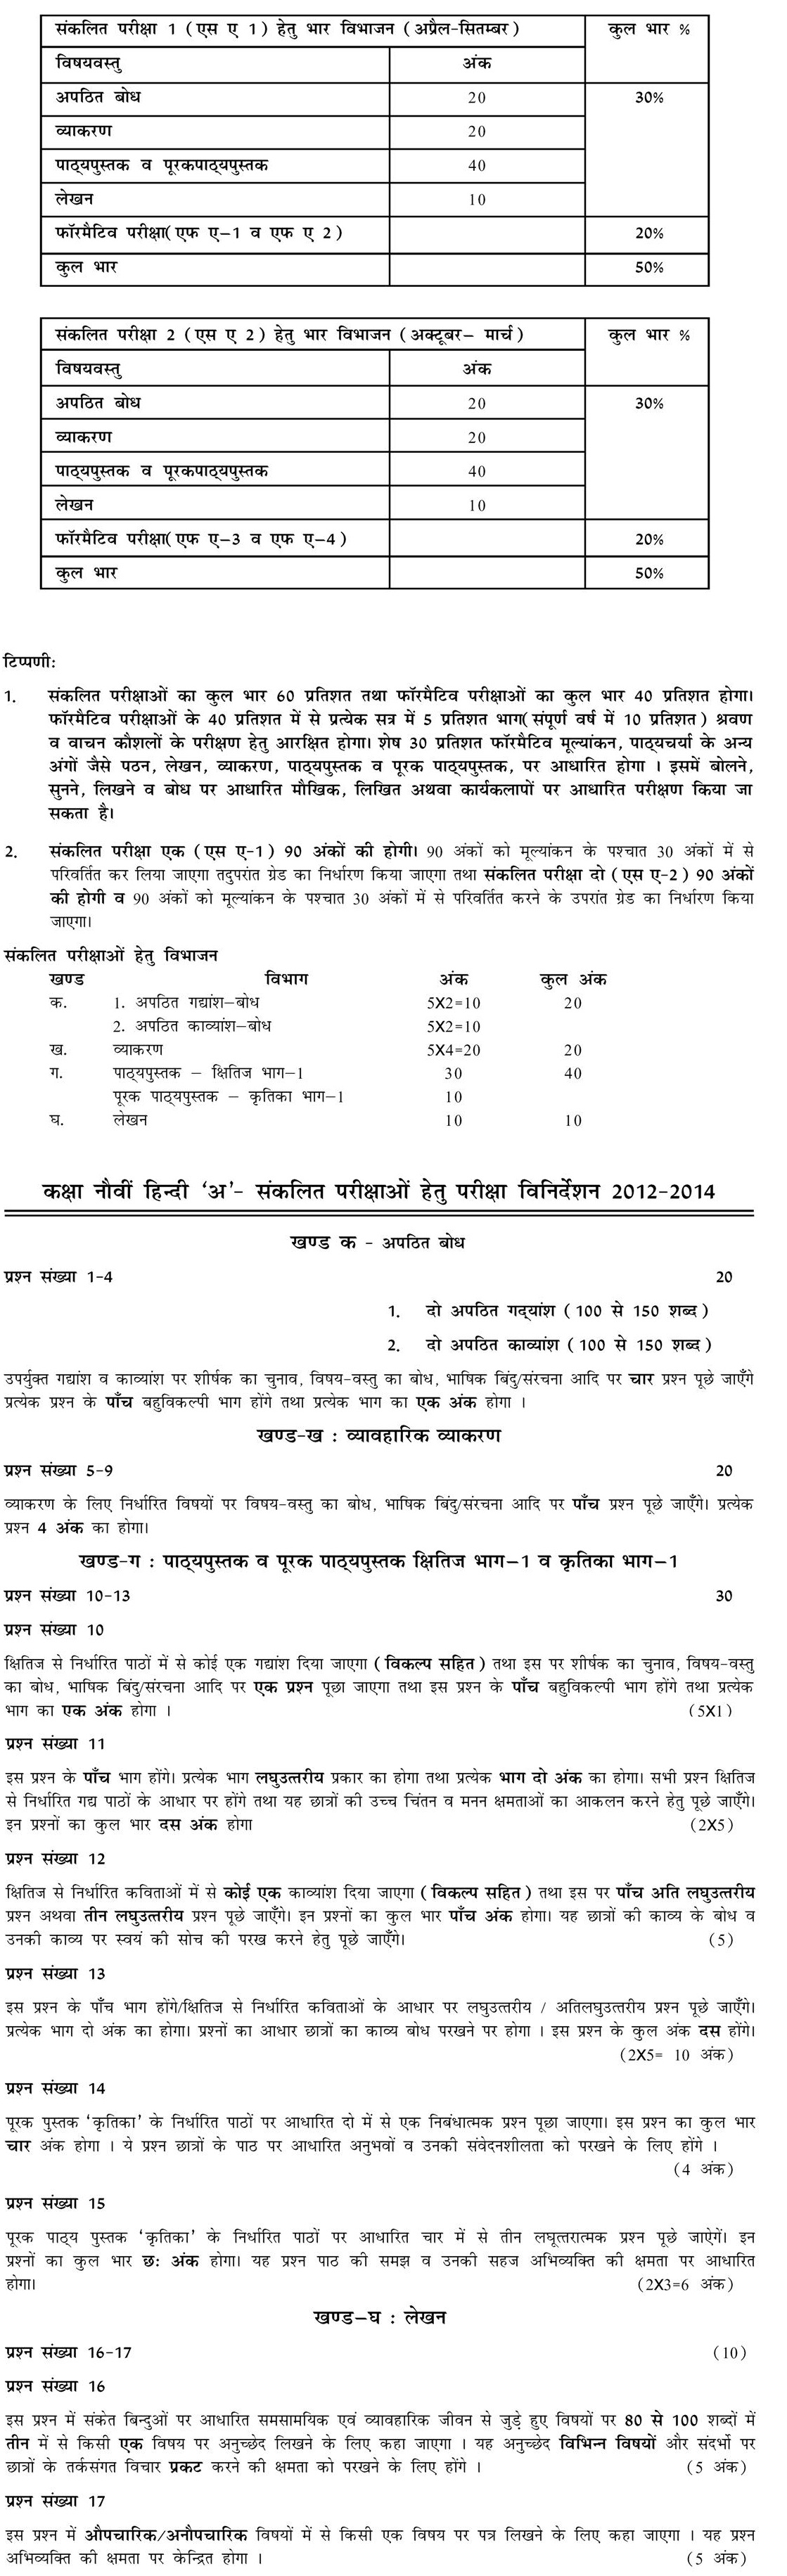 CBSE Class IX Marking Scheme 2014 Hindi A